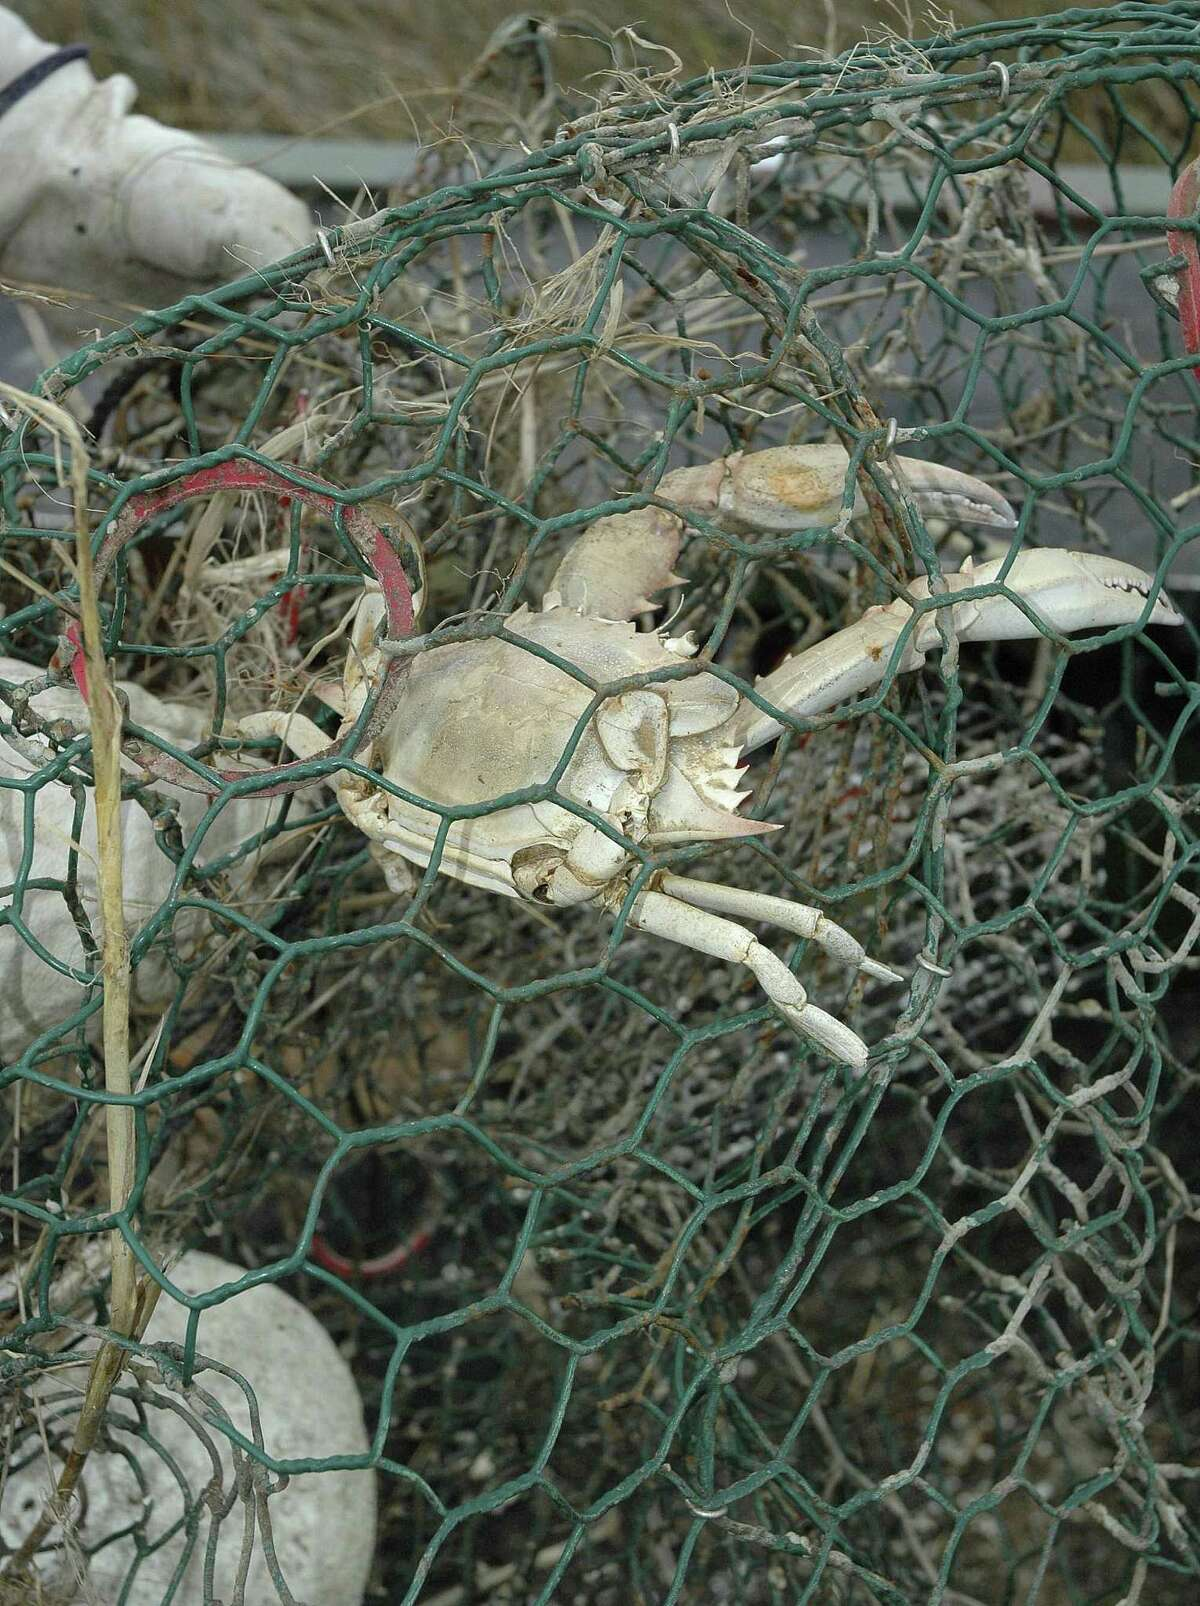 Abandoned crab traps can continue catching, and killing, crabs and other marine life. Texas' annual closure of bays to all crabbing and associated volunteer effort to remove derelict traps runs Feb.16-25, with most clean-up effort planned for Saturday, Feb. 17.